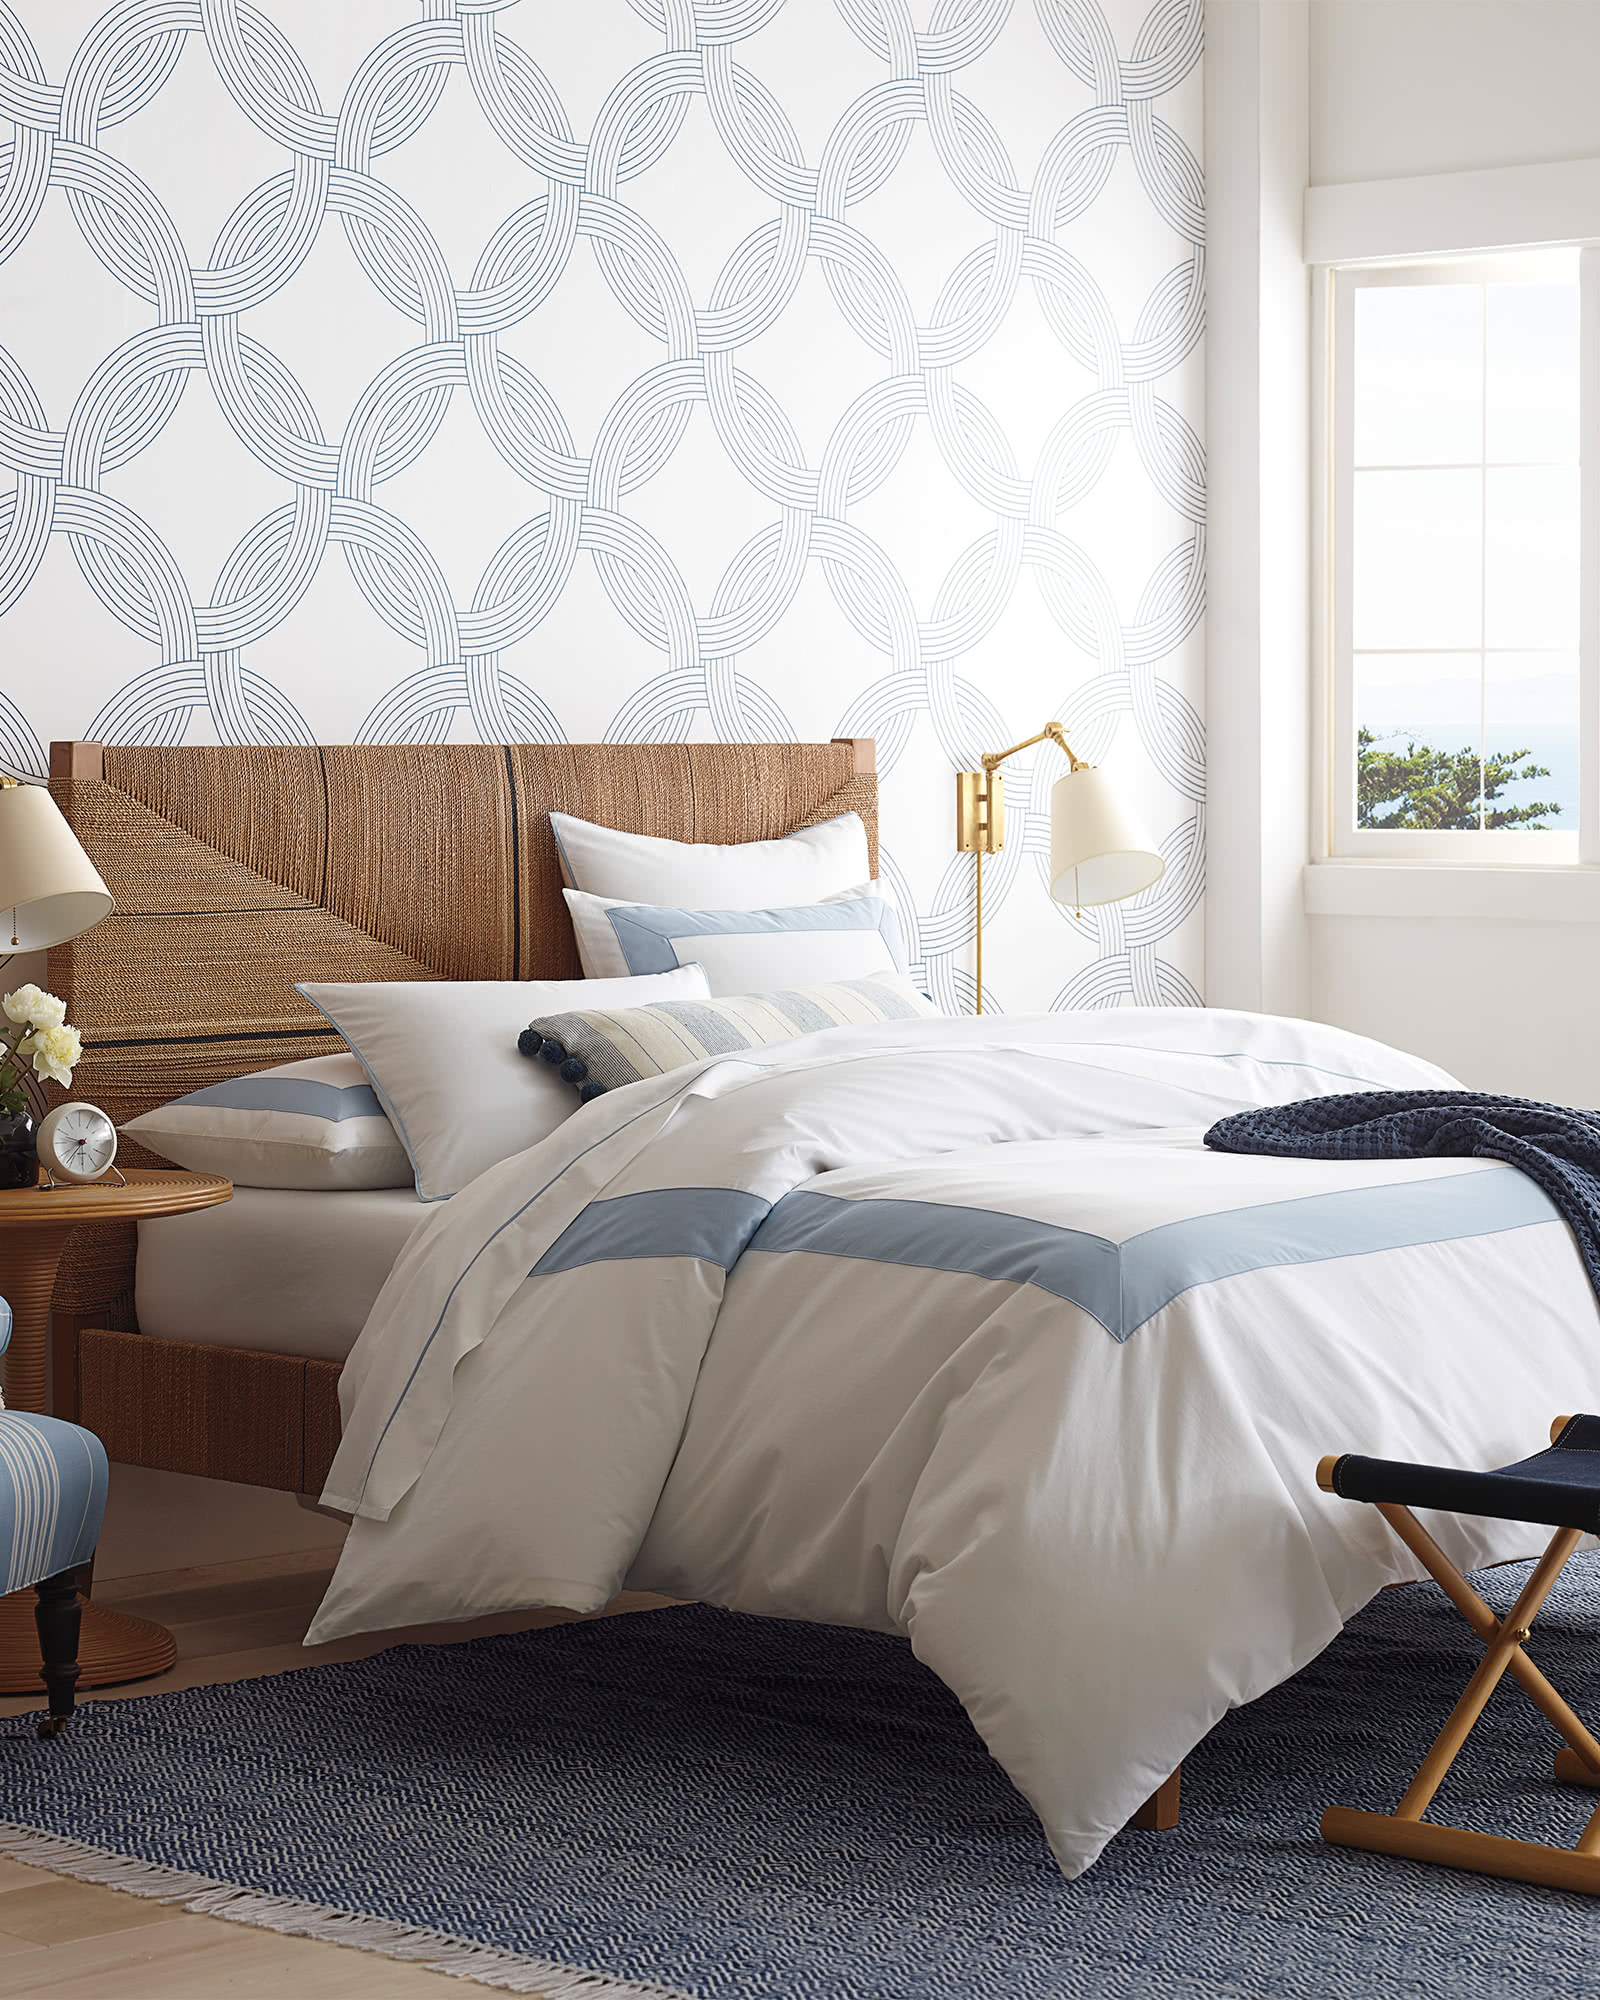 we love the relaxed look of this  geometric rug ! it comes in four colors and can be used indoors or outdoors! shop the entire look:  bed frame  (currently up to 30% off),  duvet  (currently up to 30% off), and  side table !